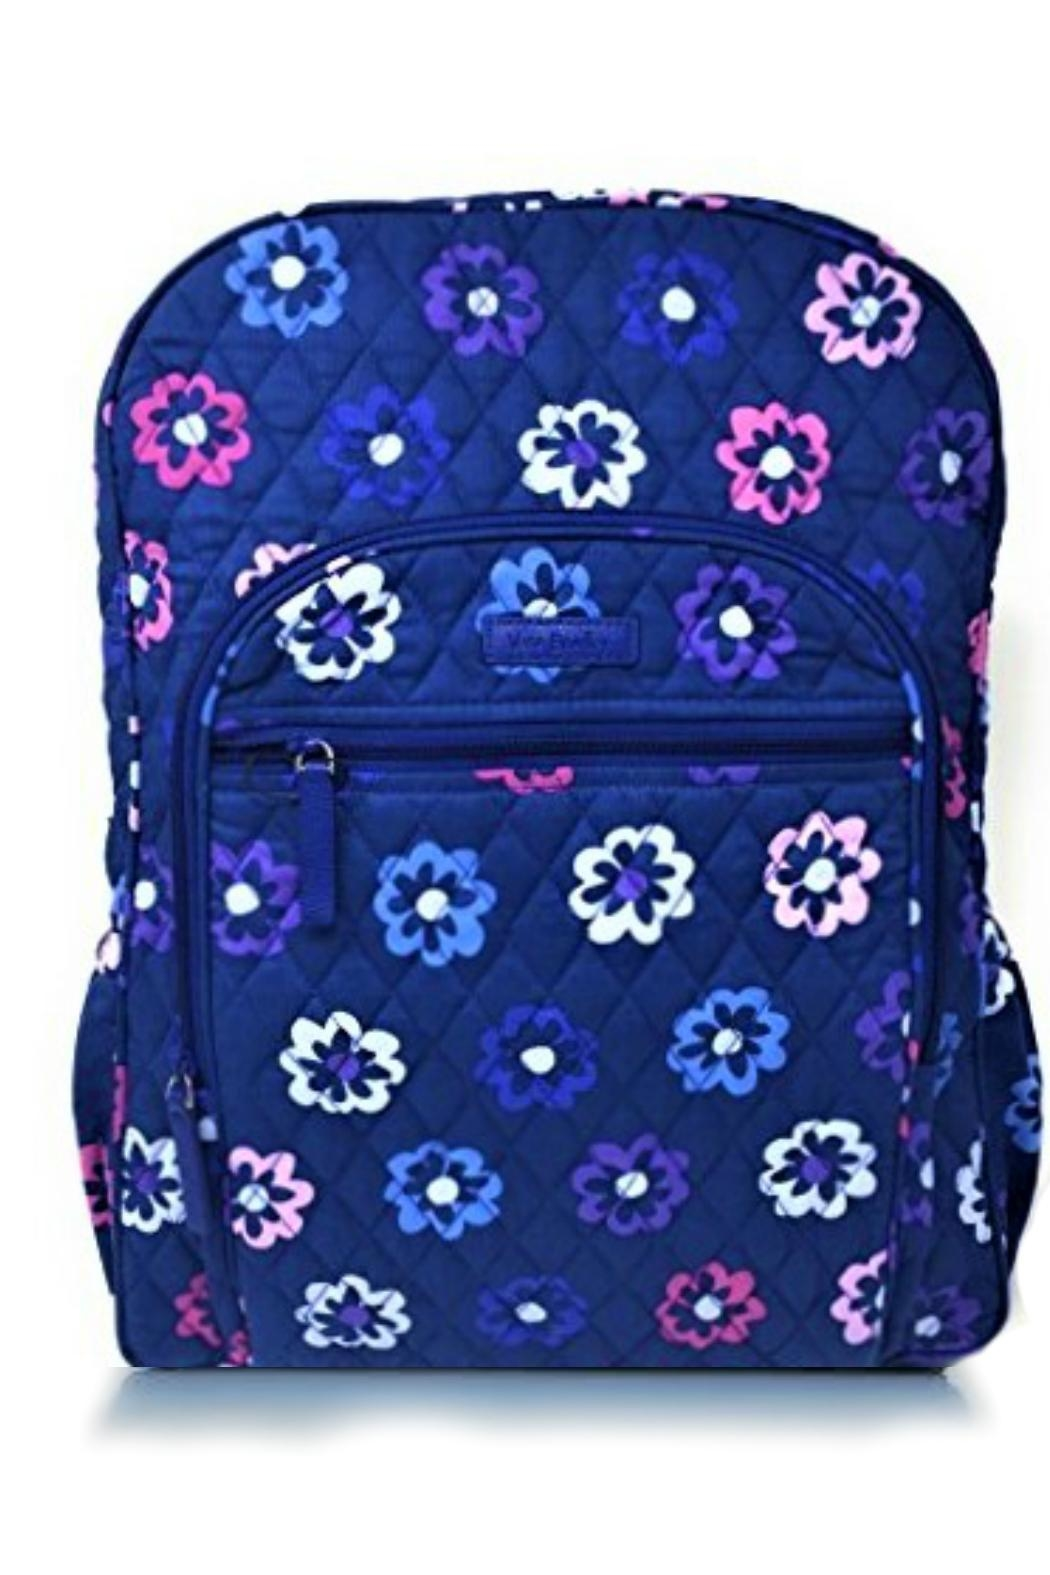 a4e953863 ... medallion multicolor backpack tradesy; vera bradley ellie flowers  campus backpack from kentucky by mimi s ...